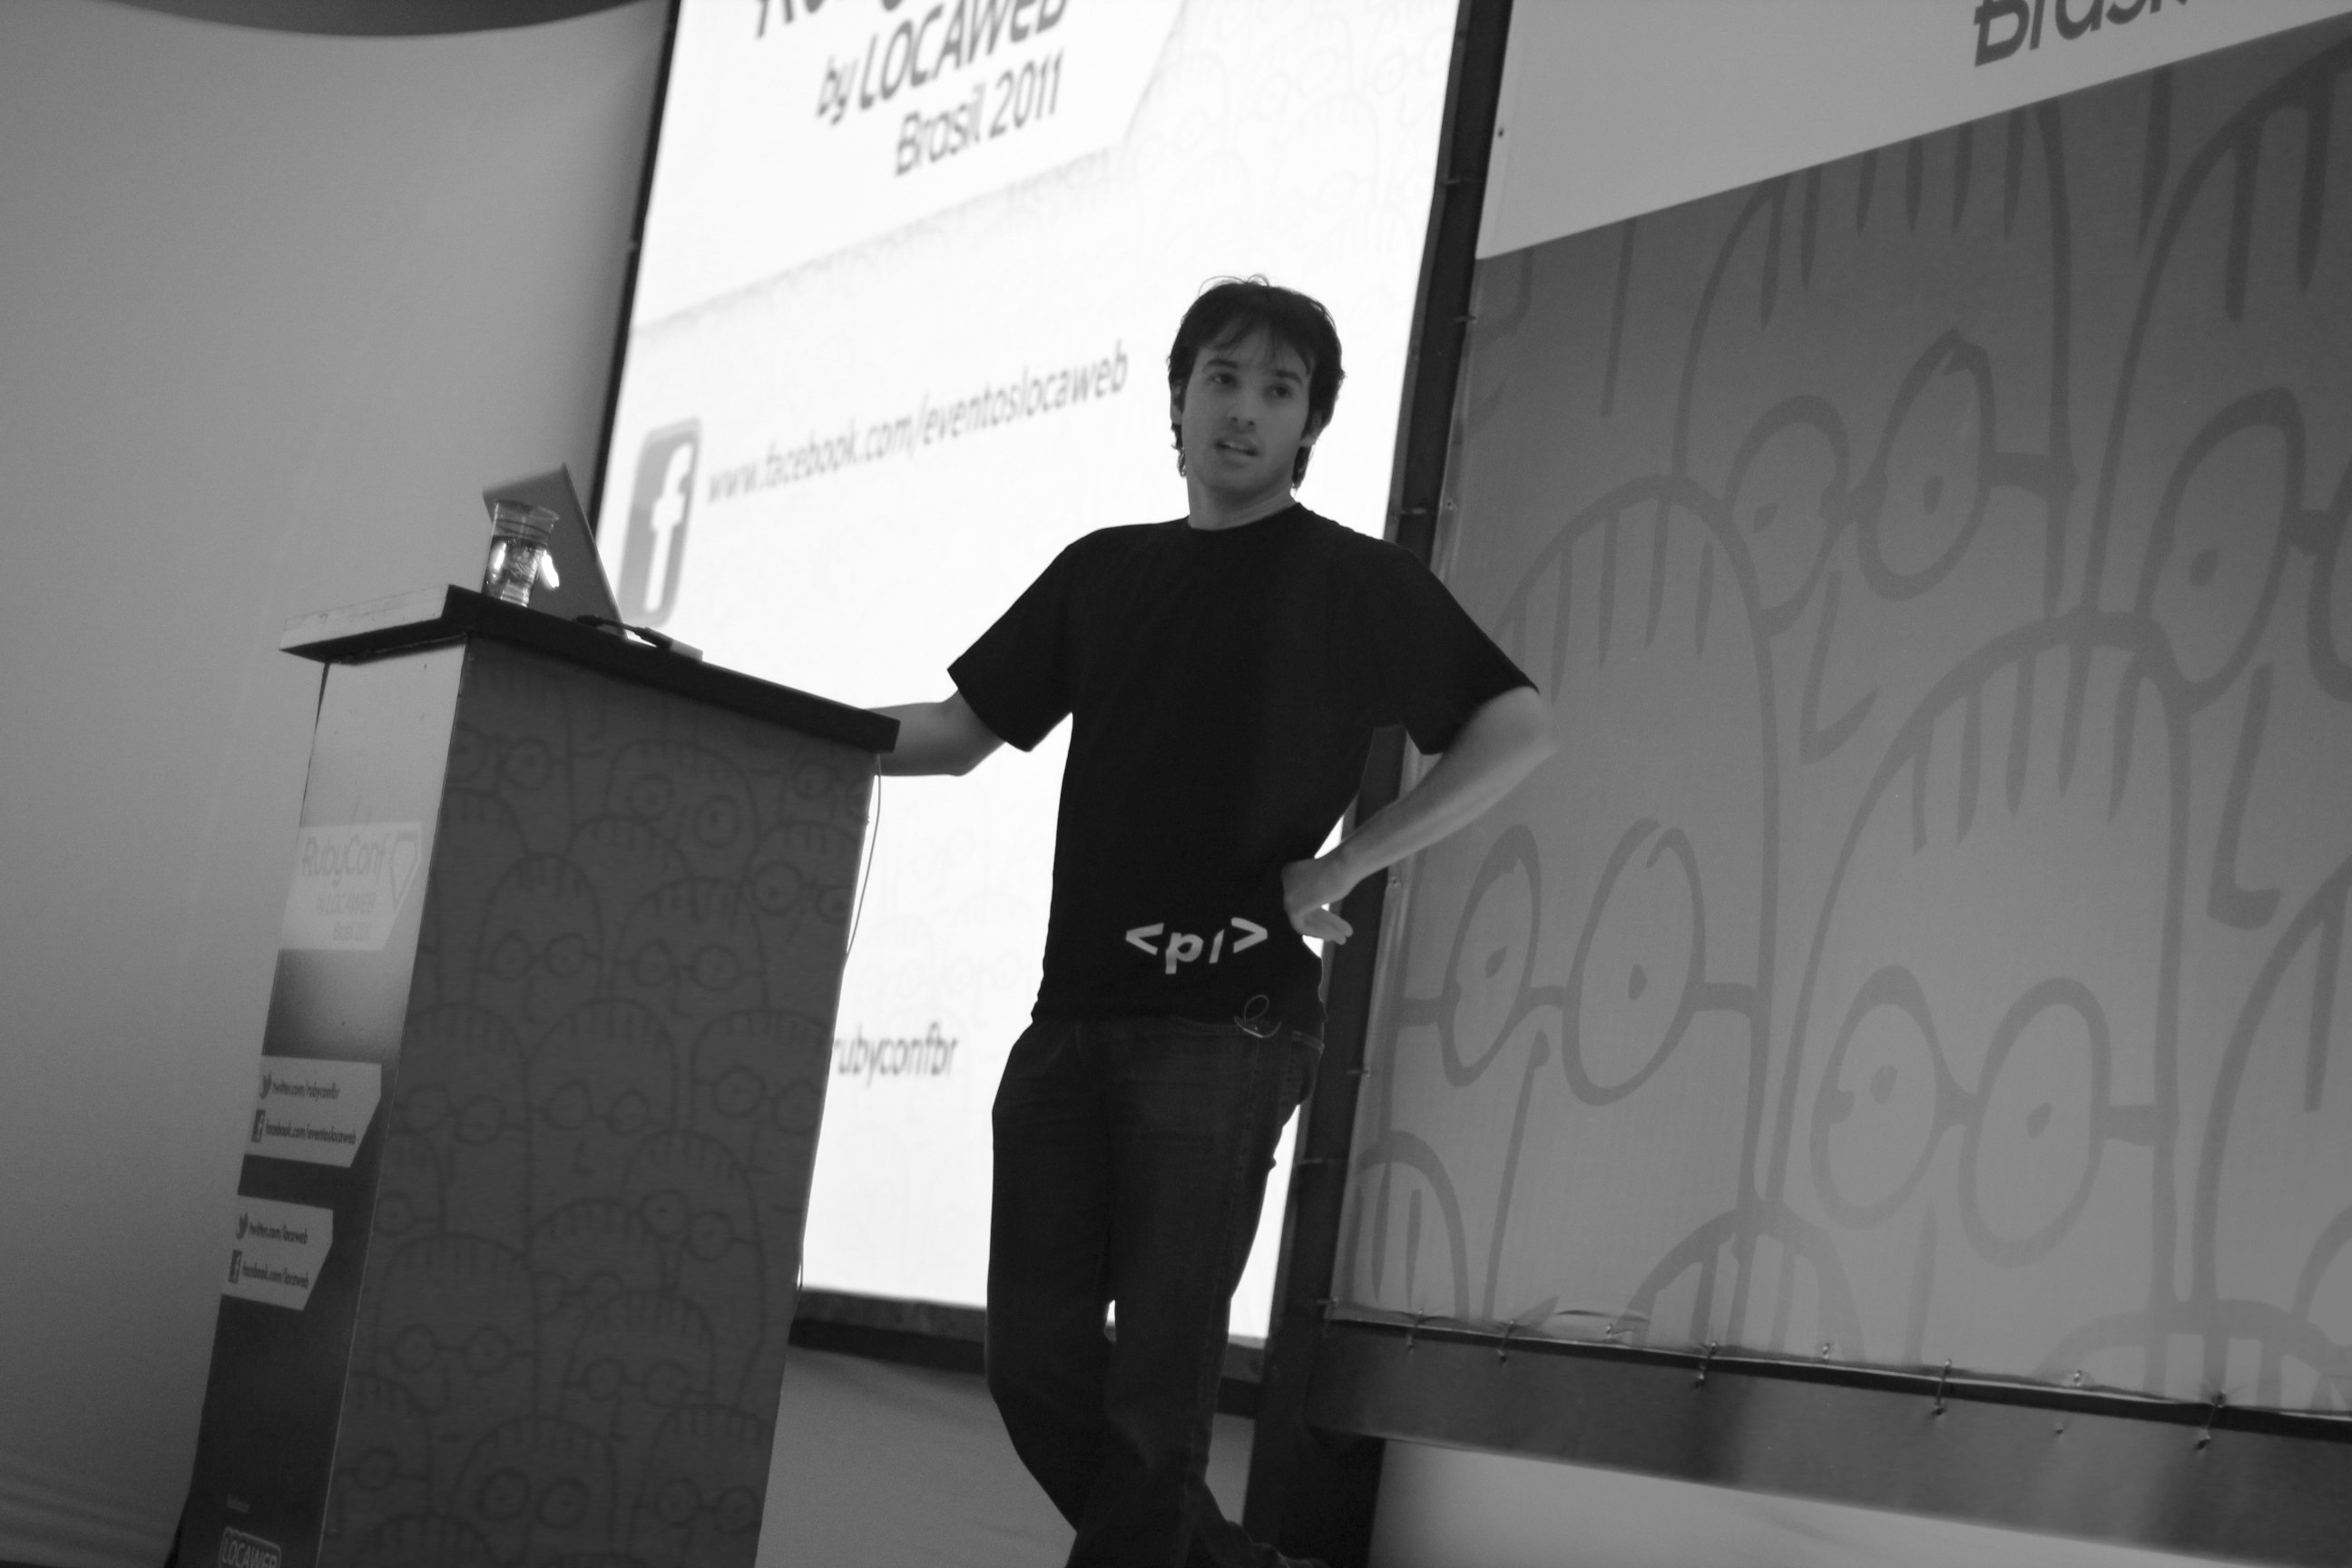 Elixir creator José Valim during a talk in Brazil in 2011.